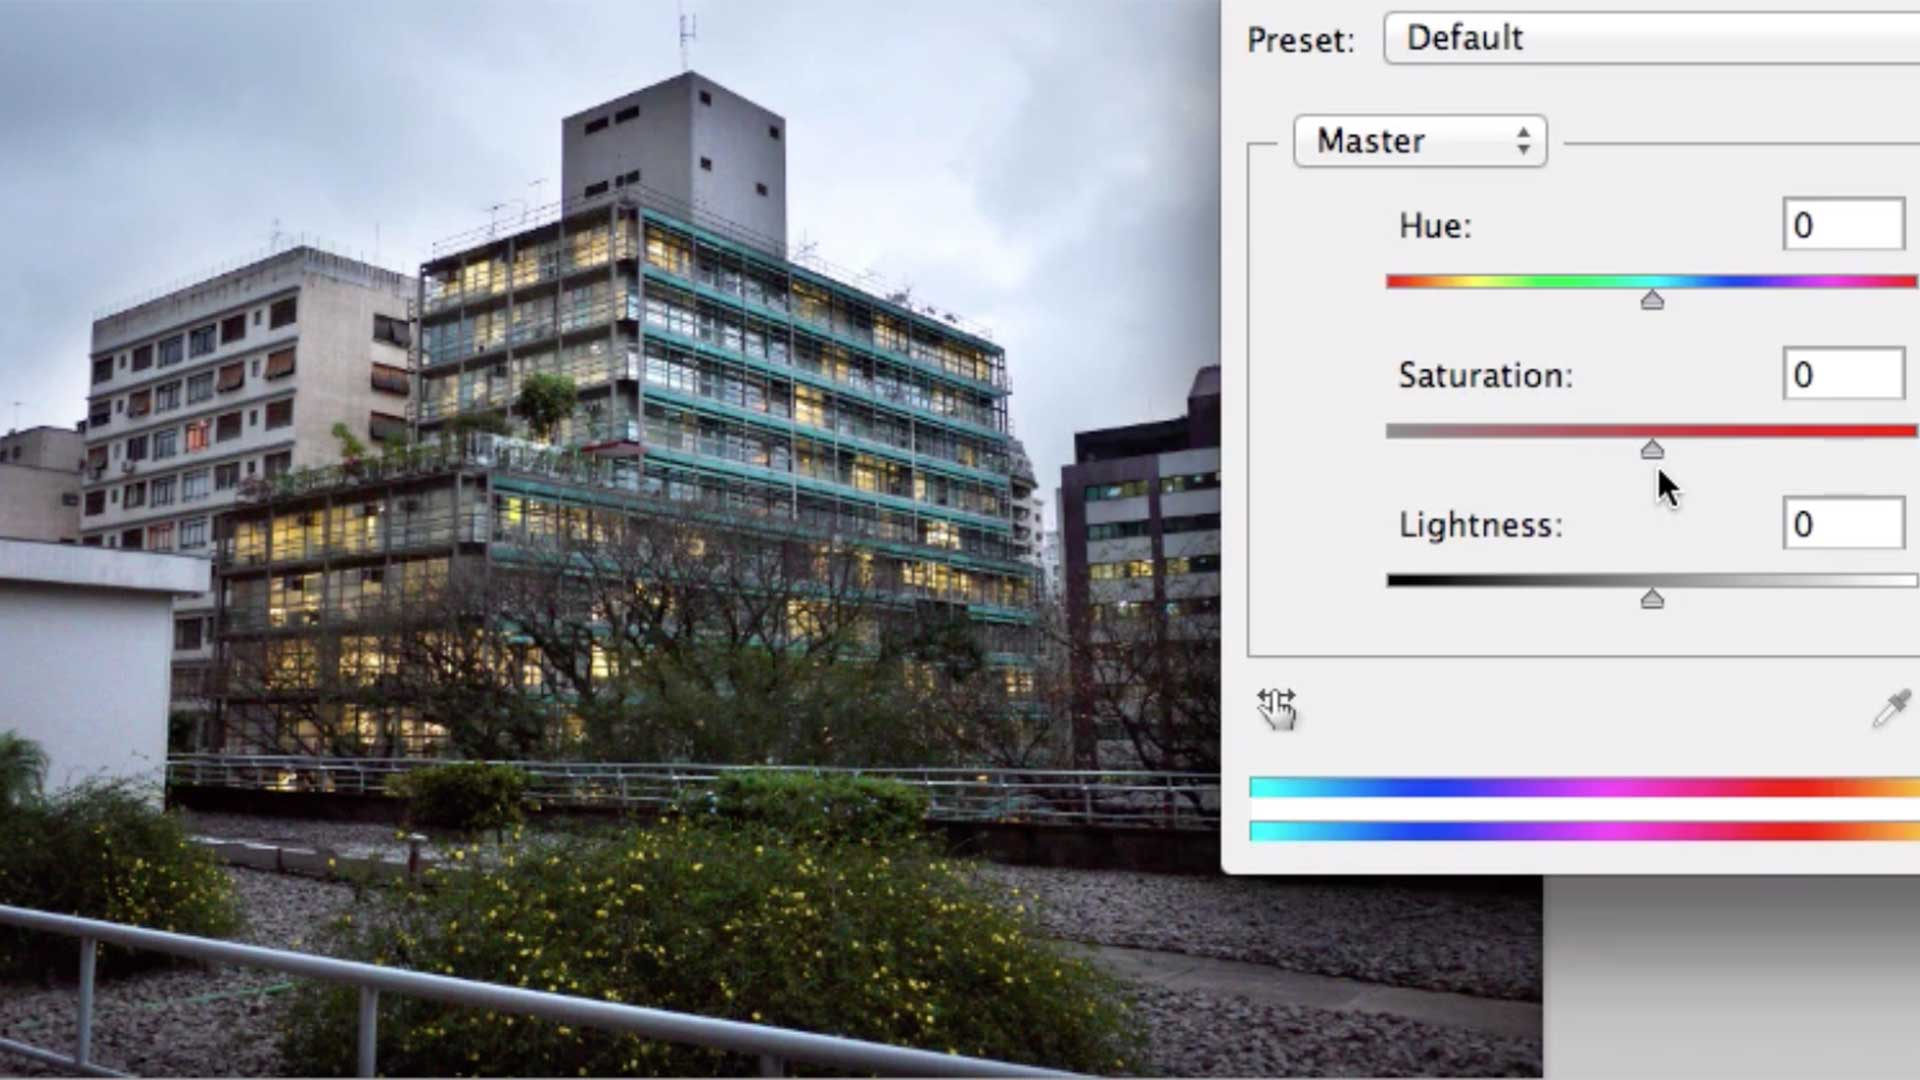 image of building manipulation in photoshop